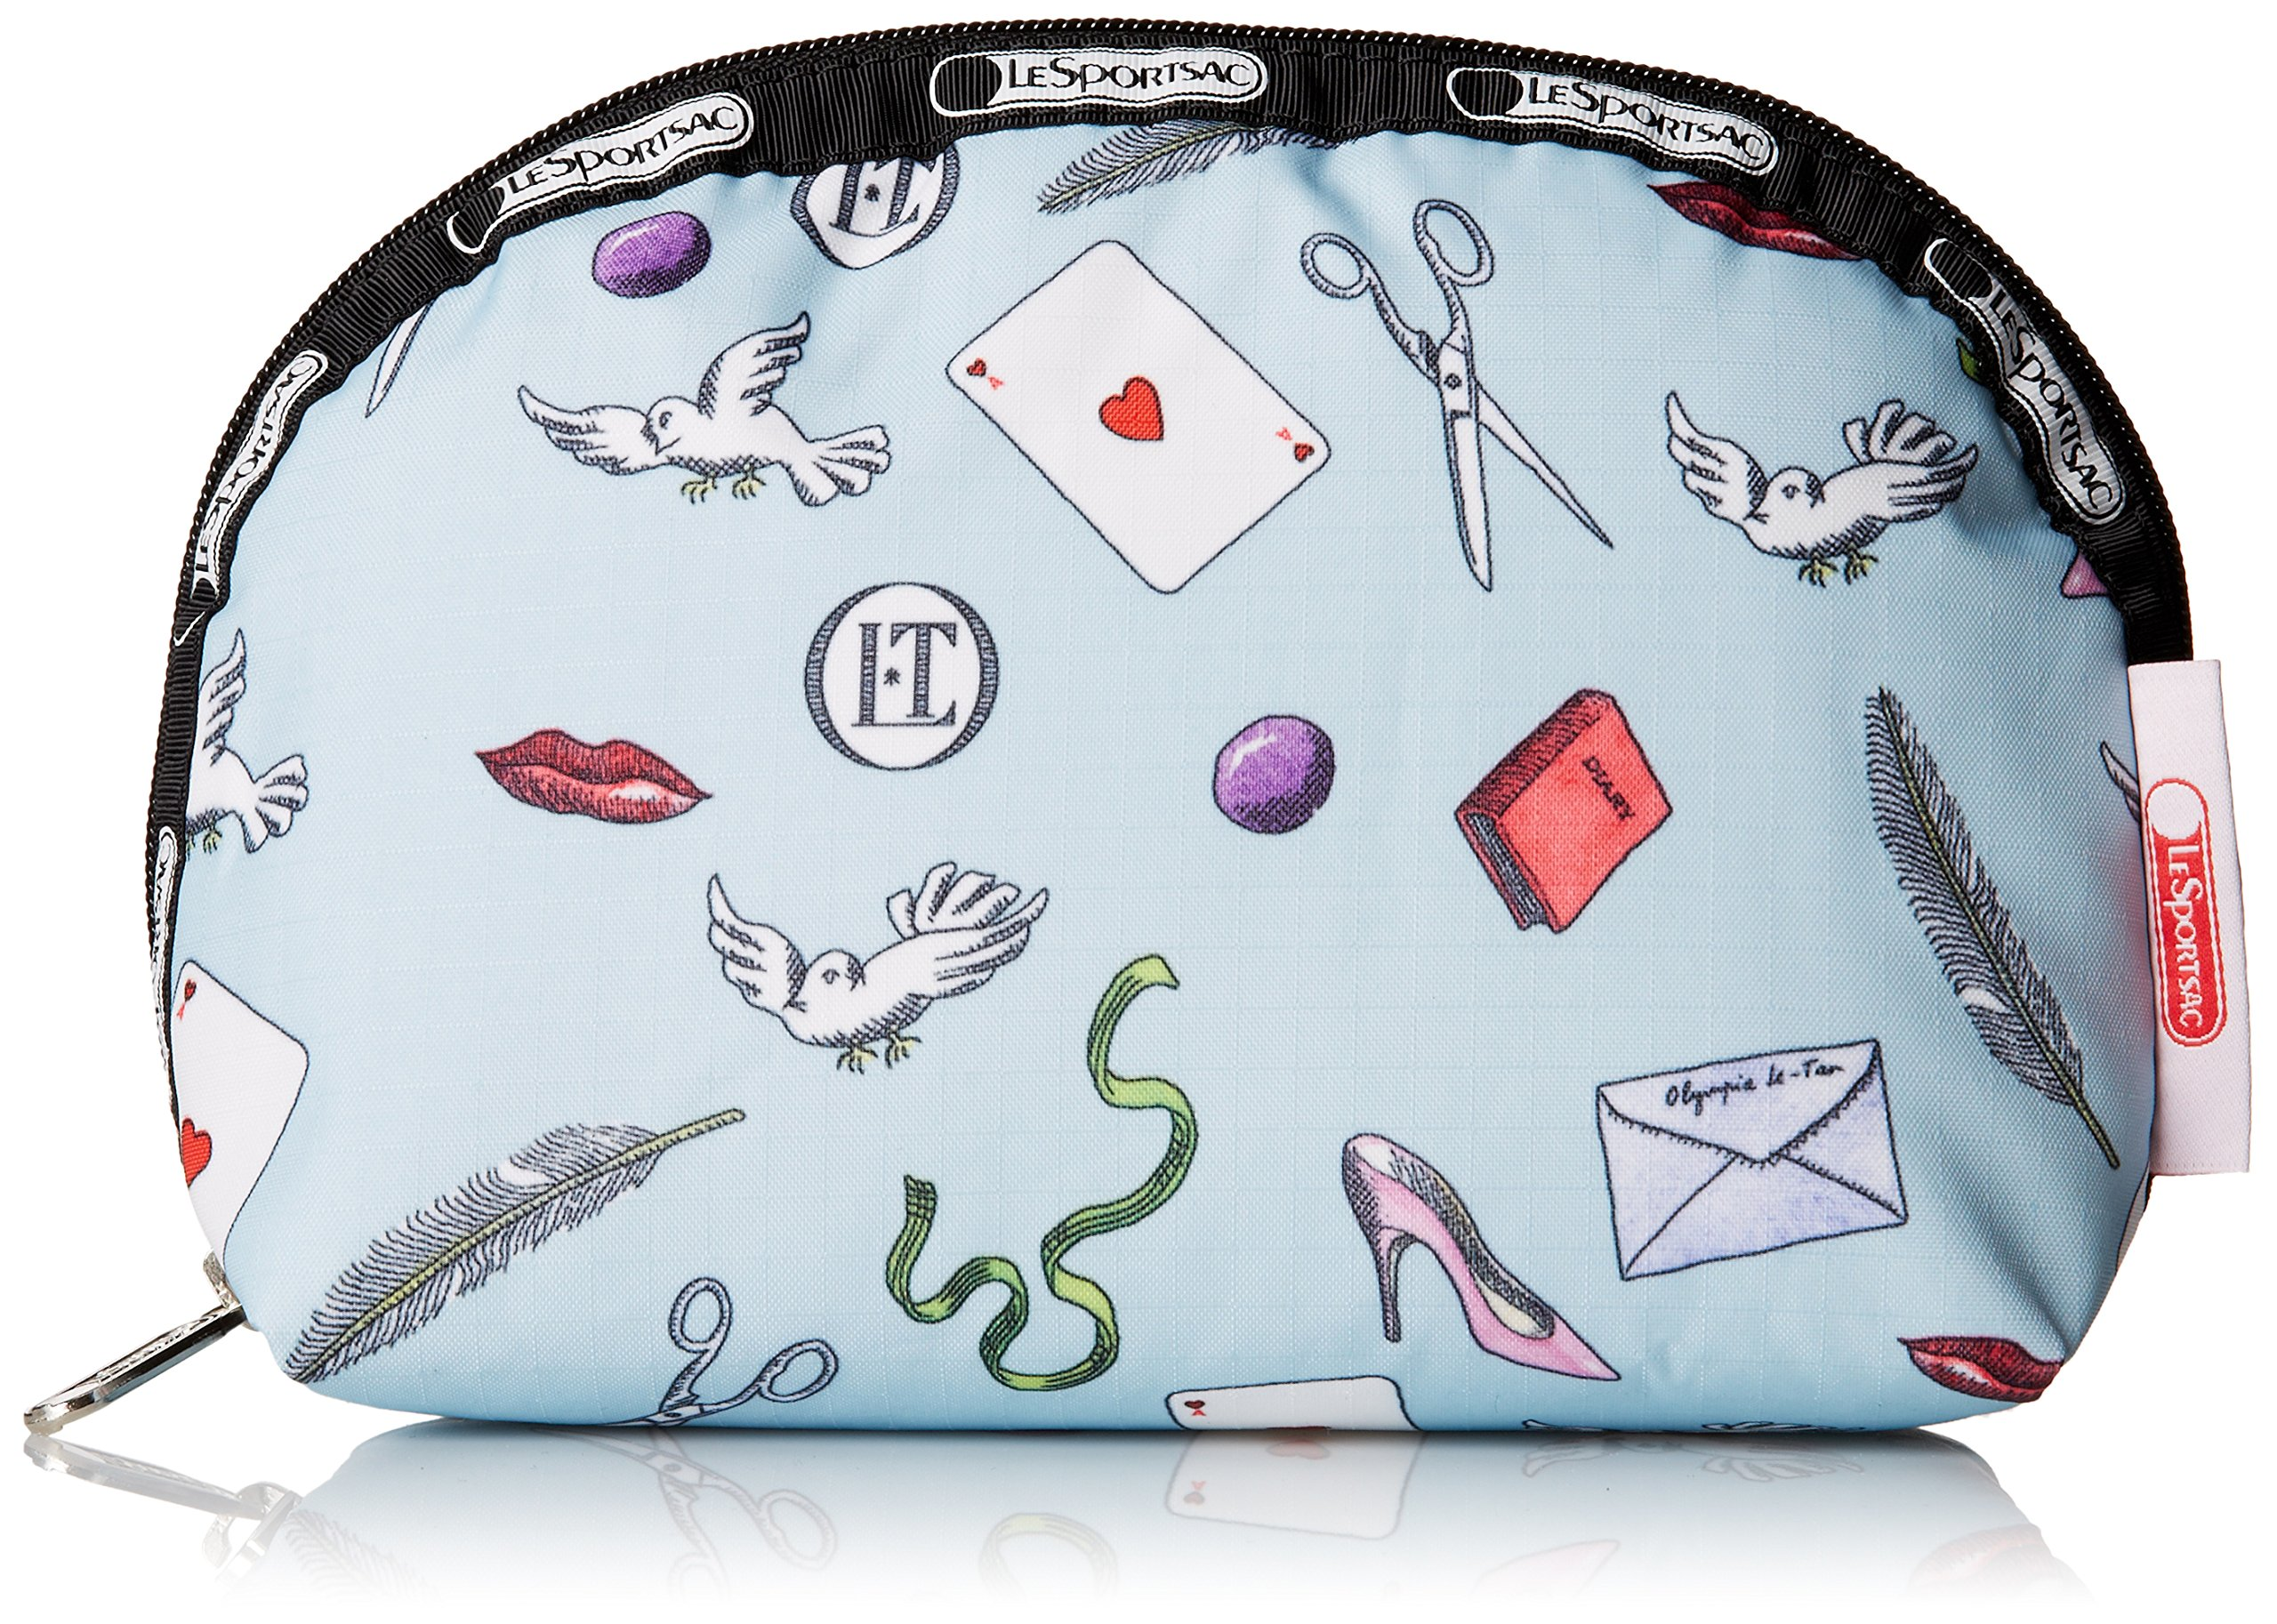 LeSportsac Medium Dome Cosmetic Case, Love Letters Blue, One Size by LeSportsac (Image #1)